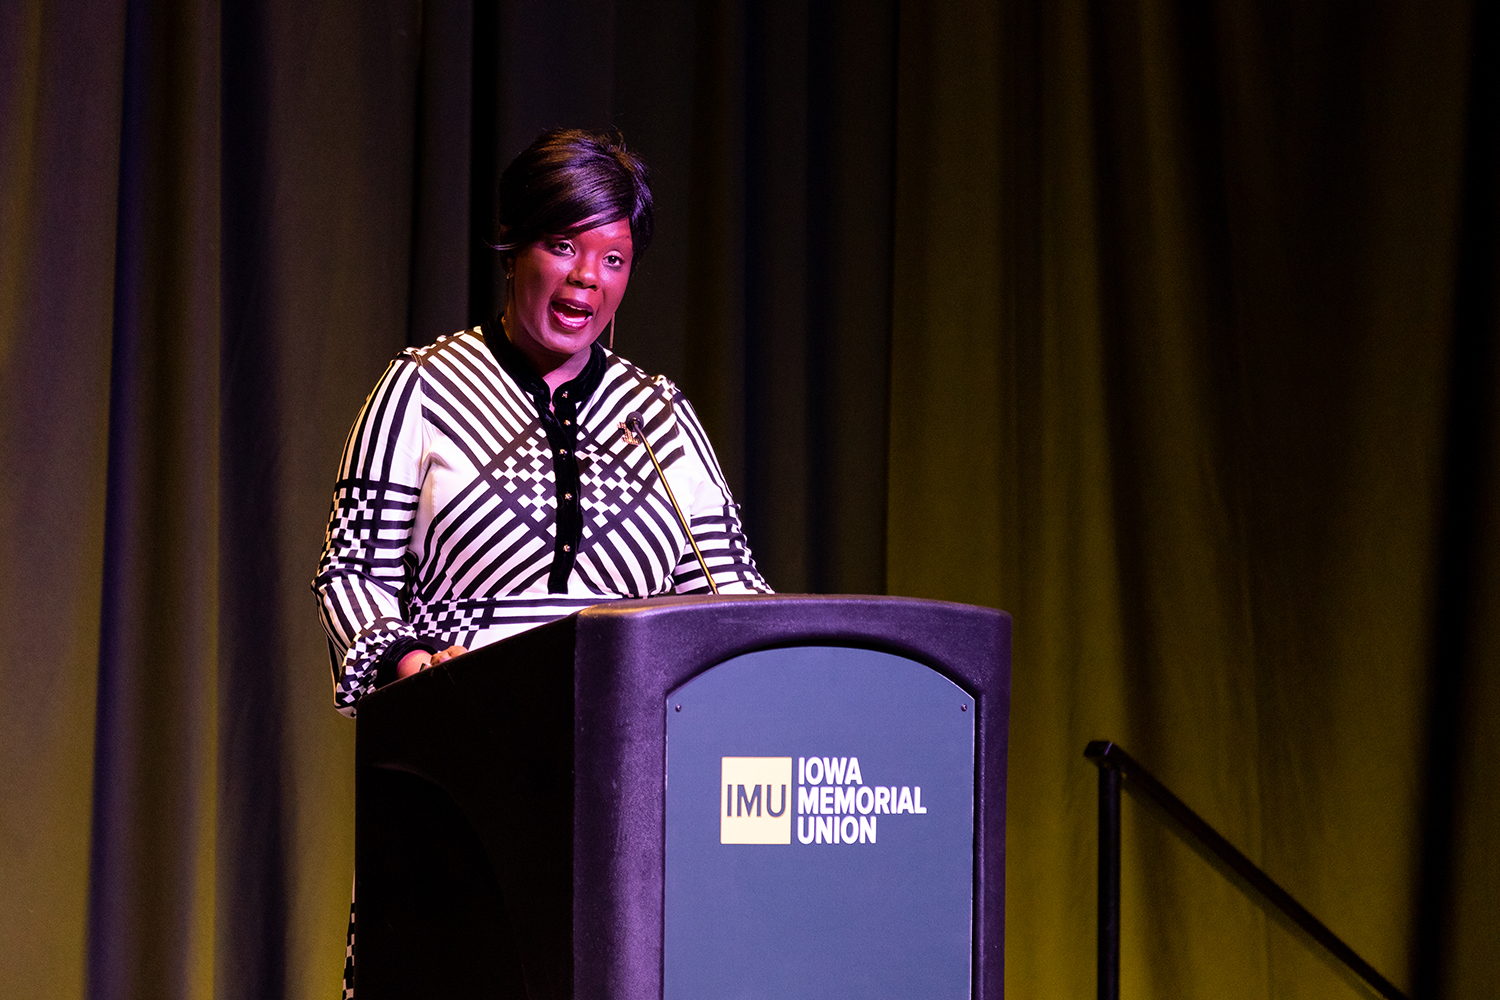 UI Vice President for Student Life Melissa Shivers speaks at the Chief Diversity Office's 2019 Update on Diversity, Equity, and Inclusion in the IMU on Wednesday, Jan. 16, 2019.